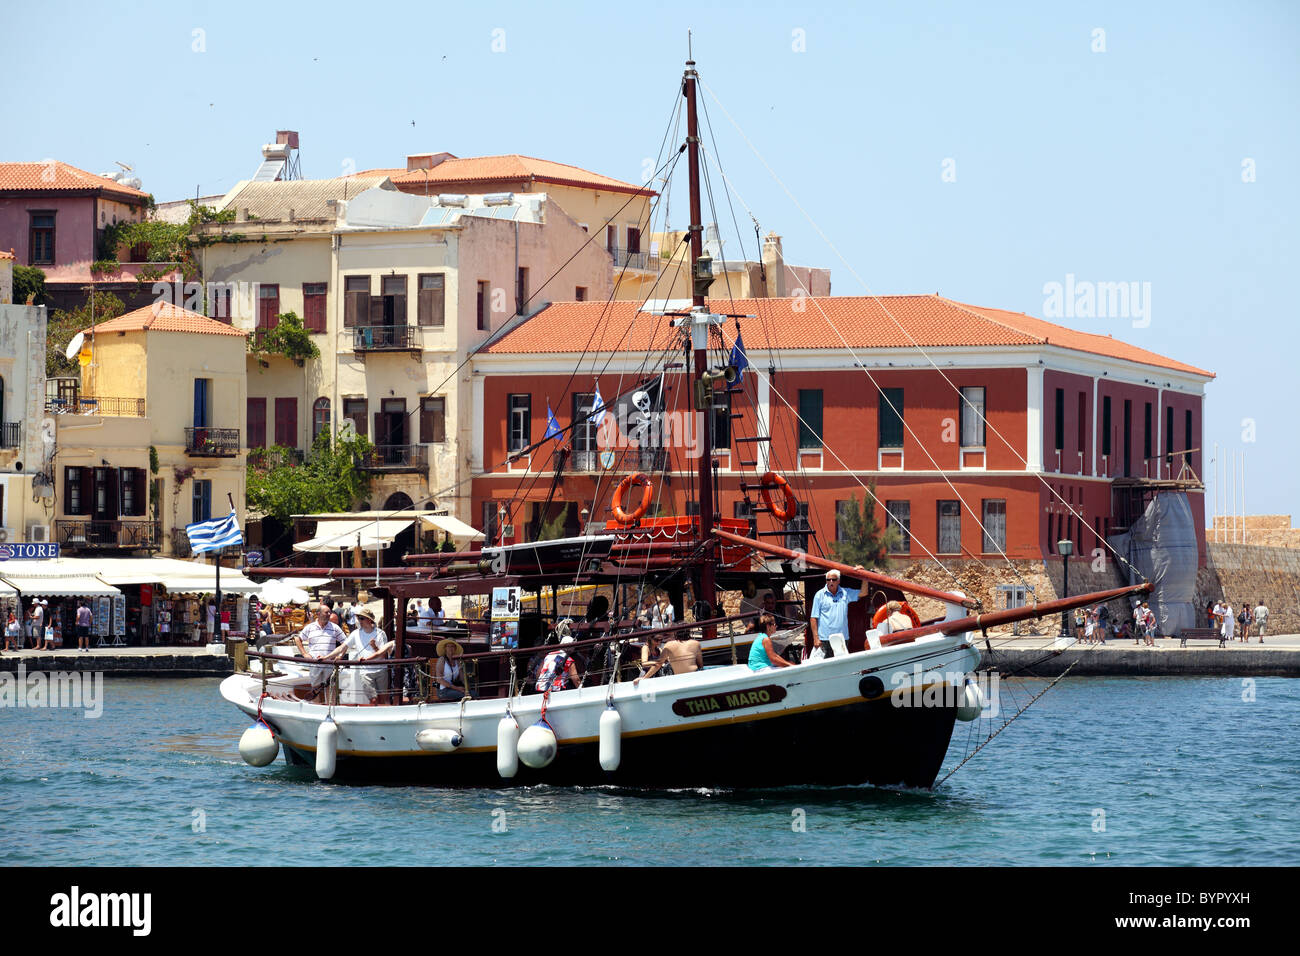 Trippers embark on a one-hour cruise from Chania to Lazaretta aboard the Thio Mara. - Stock Image